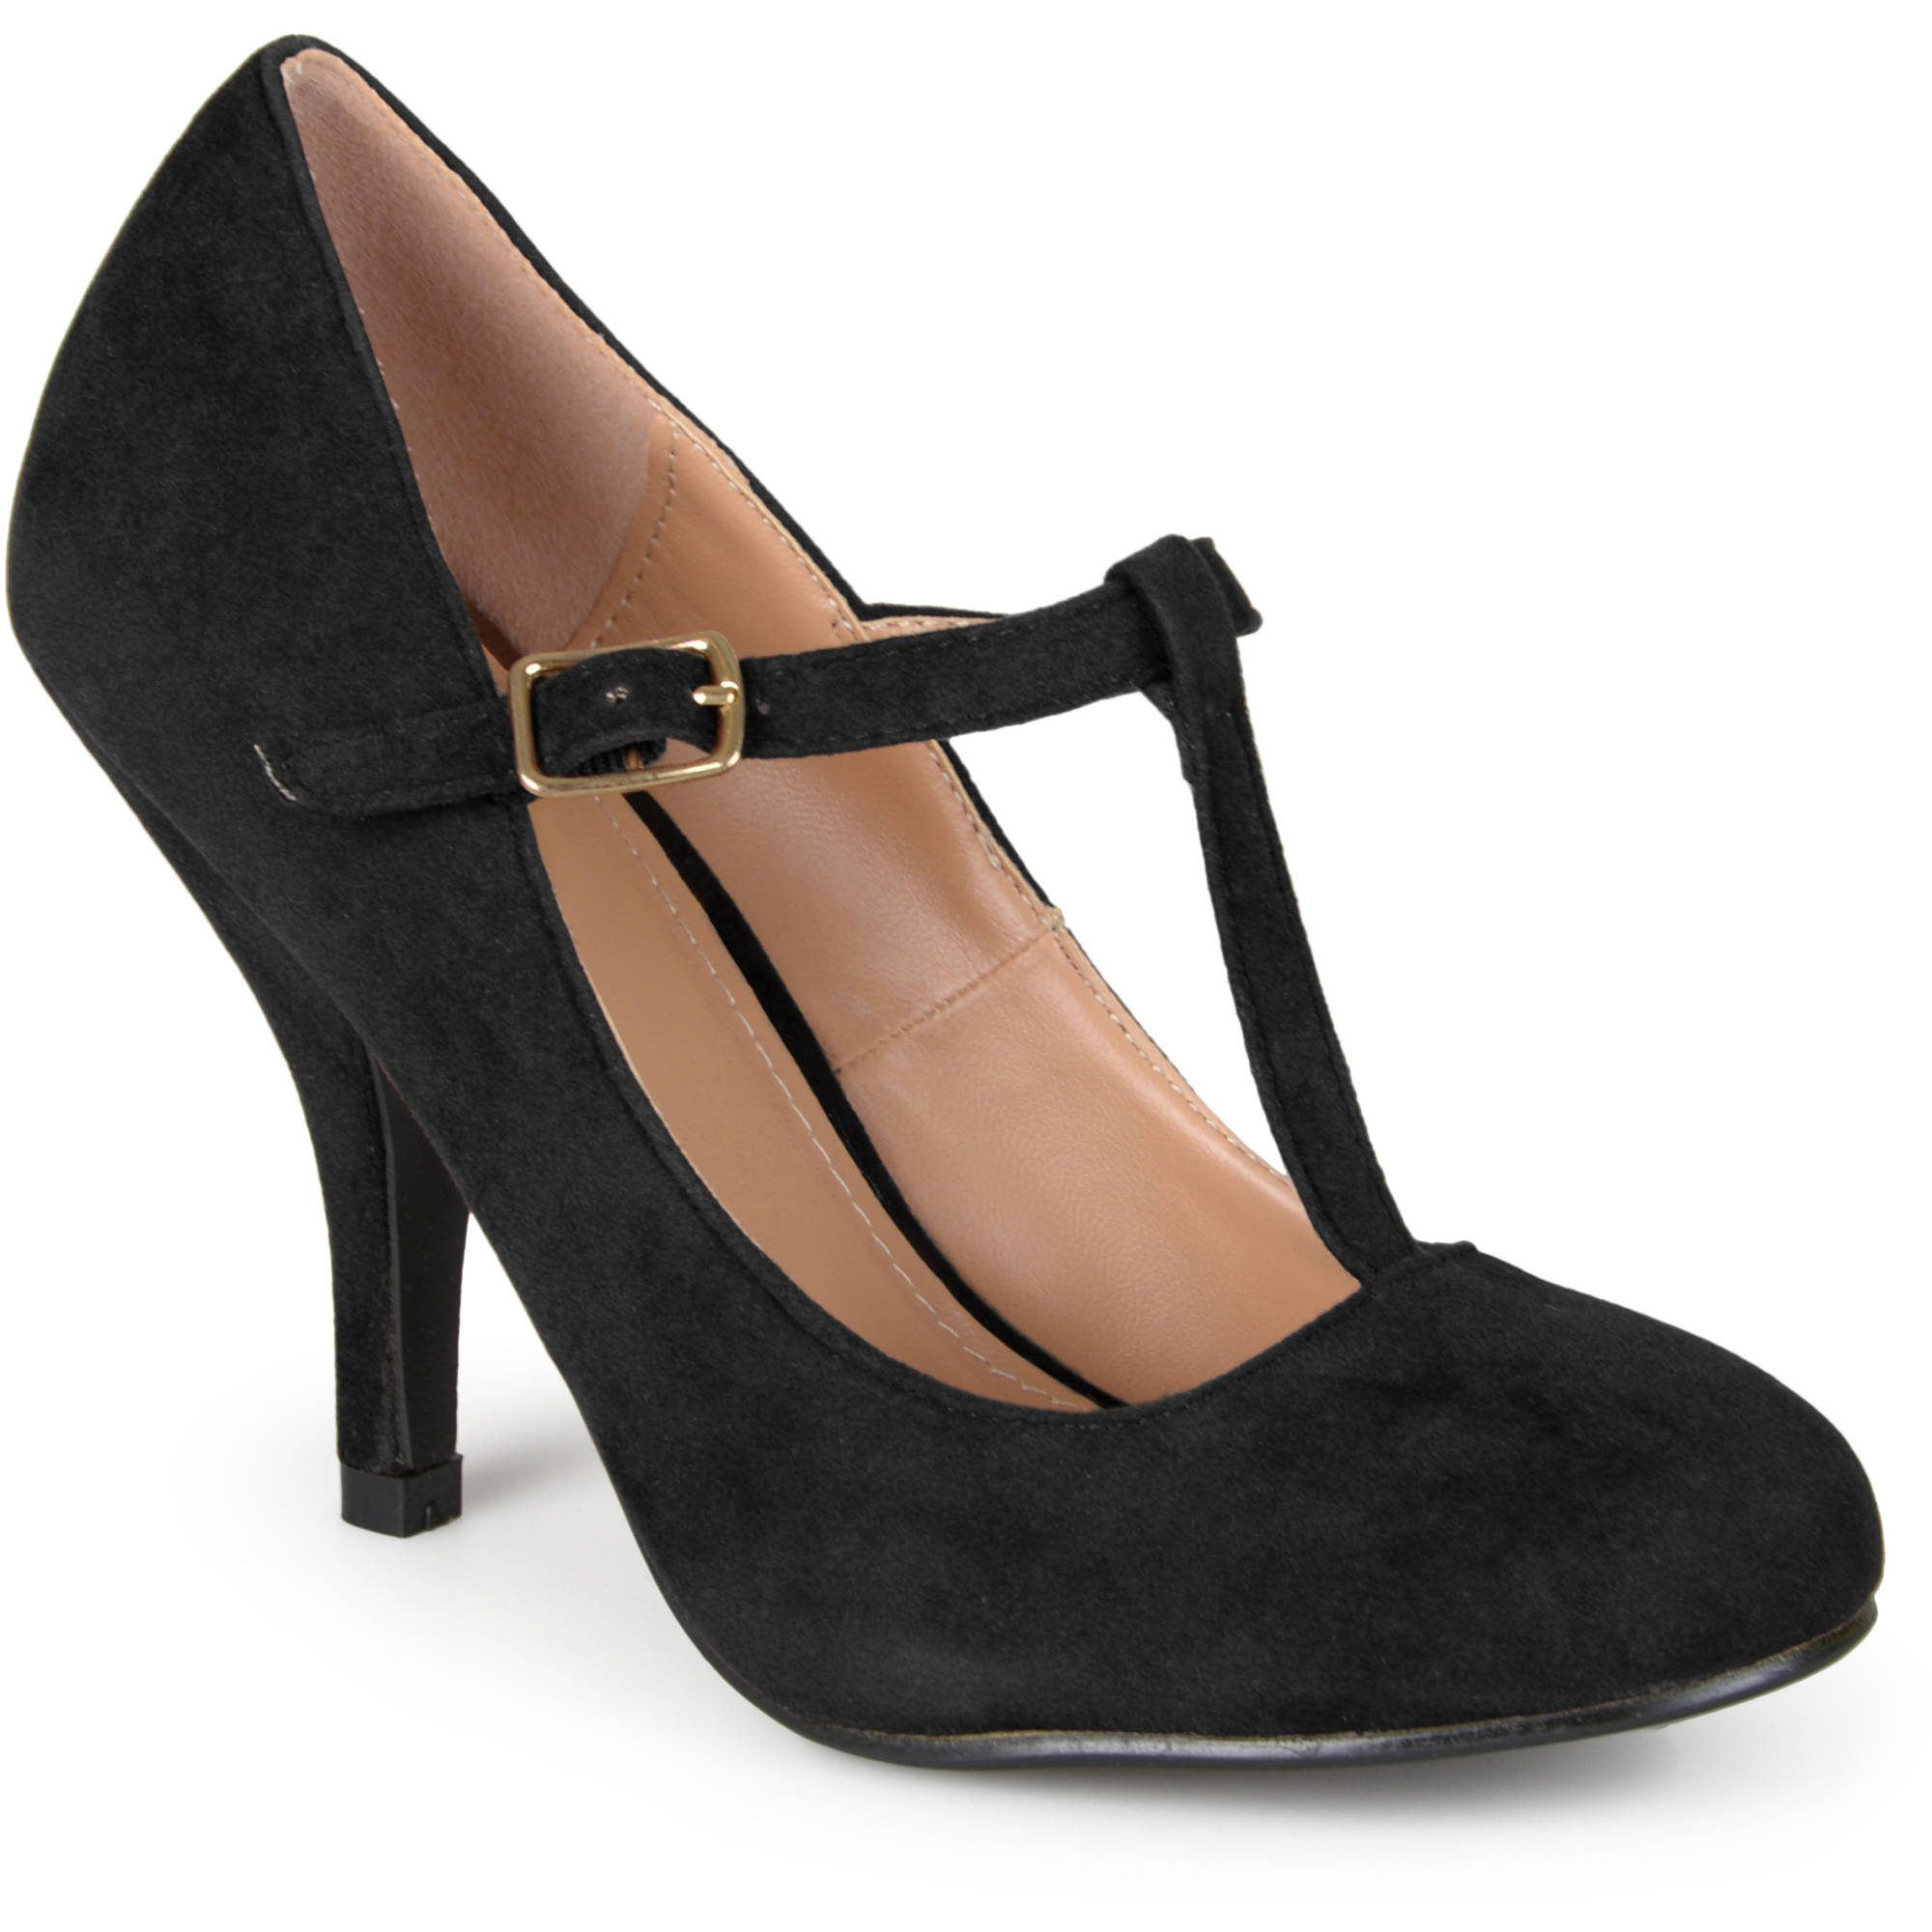 Brinley Co. Womens Wide Width Sueded T-strap Pumps